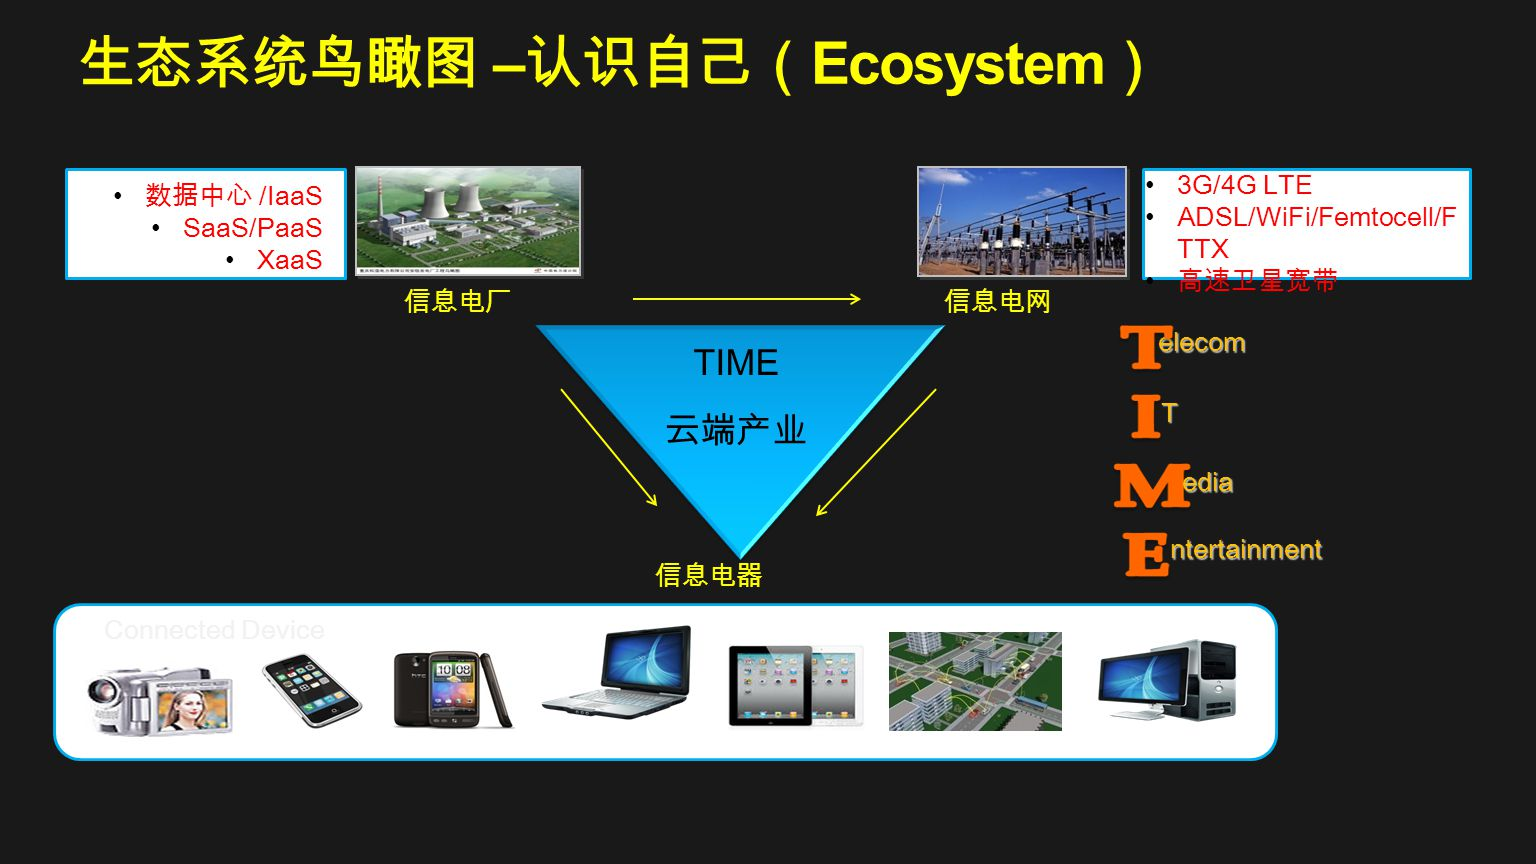 – Ecosystem Connected Device 3G/4G LTE ADSL/WiFi/Femtocell/F TTX /IaaS SaaS/PaaS XaaS TIME elecom T edia ntertainment